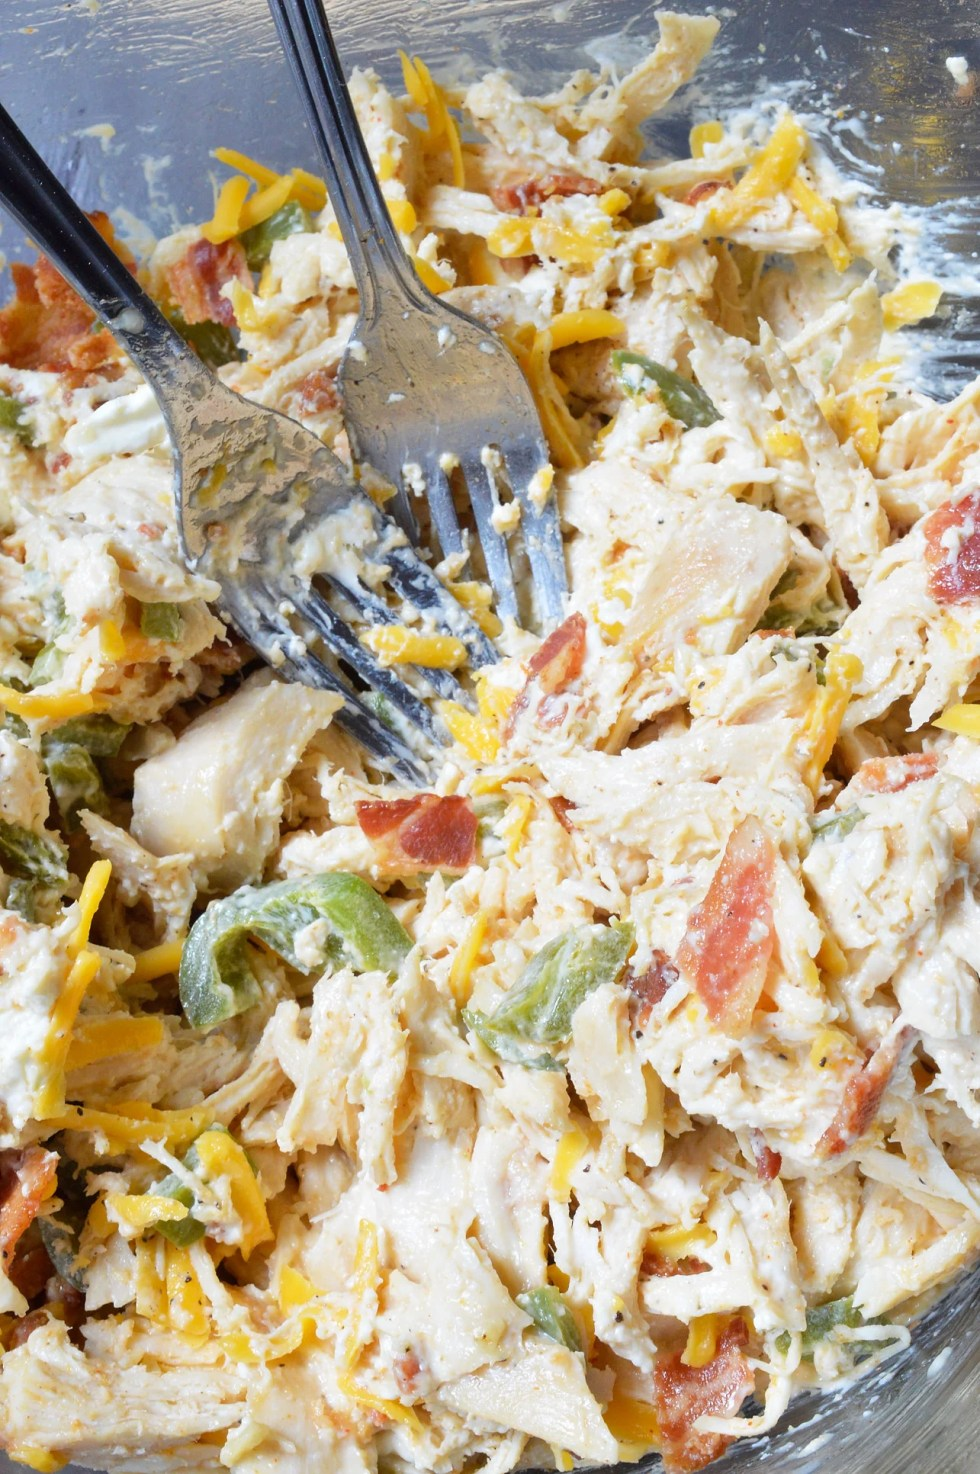 This Jalapeño Popper Chicken Salad is the ultimate! Creamy chicken salad with roasted jalapeños, bacon and cheddar cheese. Say goodbye to boring ol' chicken sandwiches and have Jalapeño Popper Chicken Wraps instead.